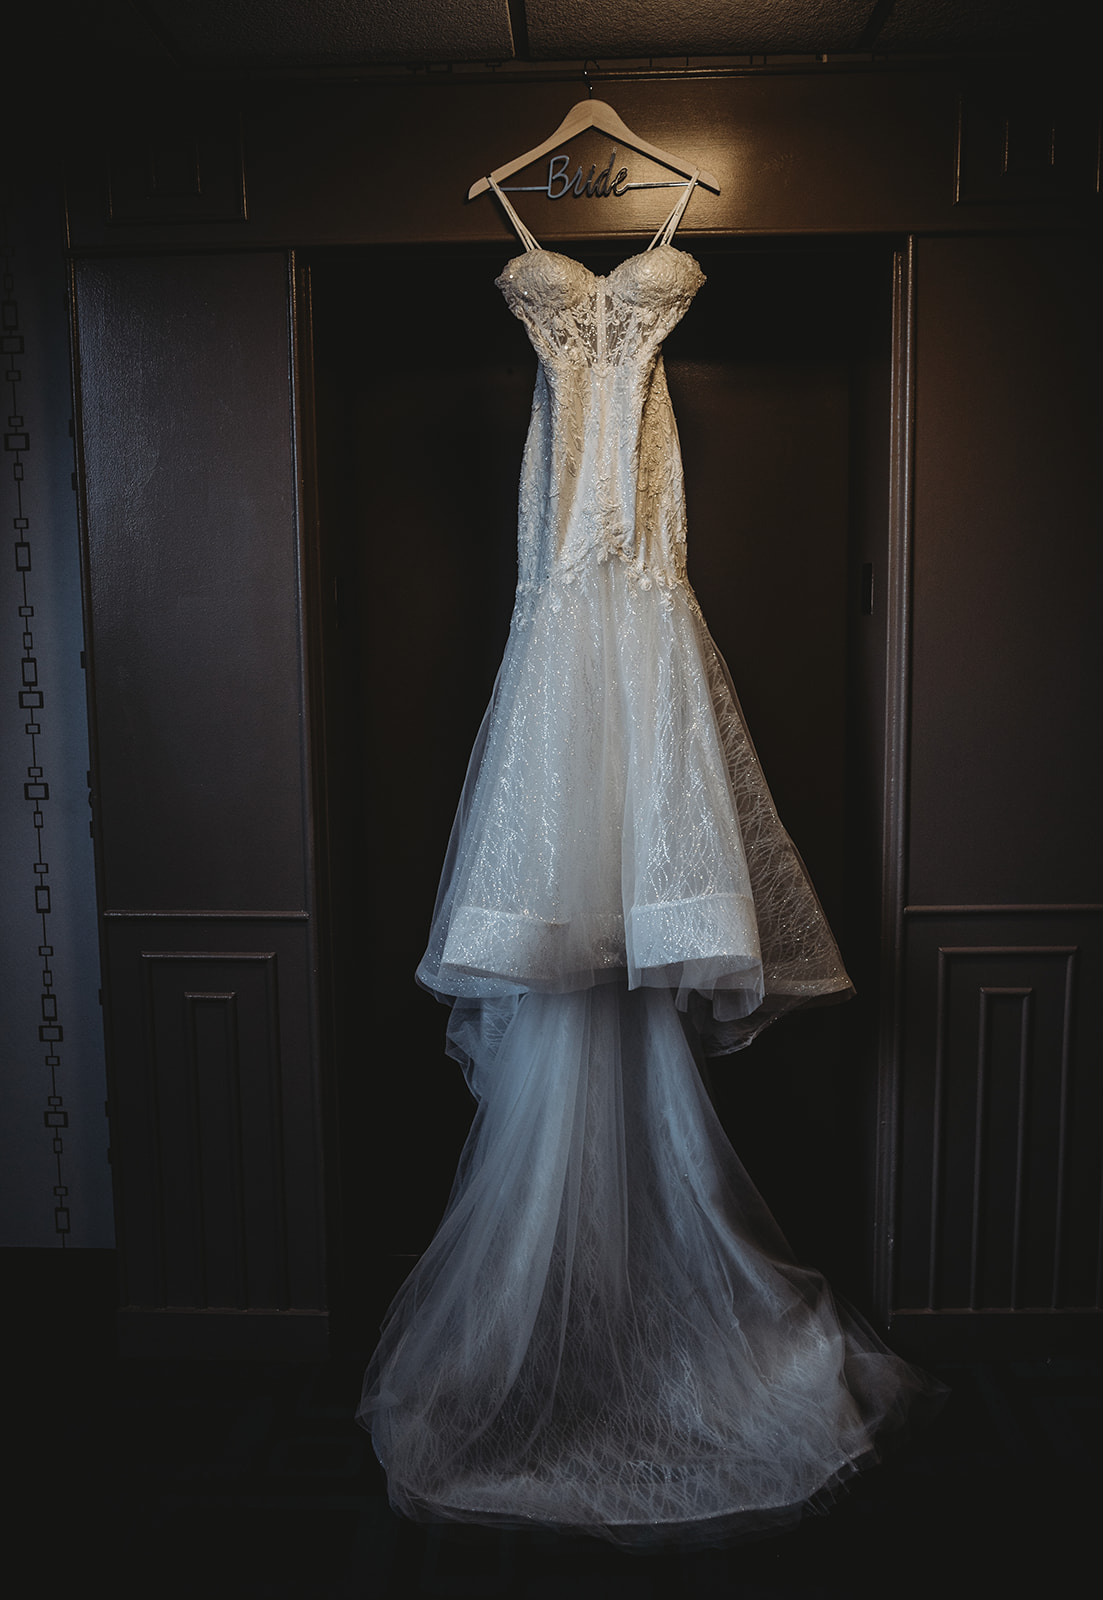 brides calla blanche wedding dress hung for photos in hartford connecticut - Pearl Weddings & Events